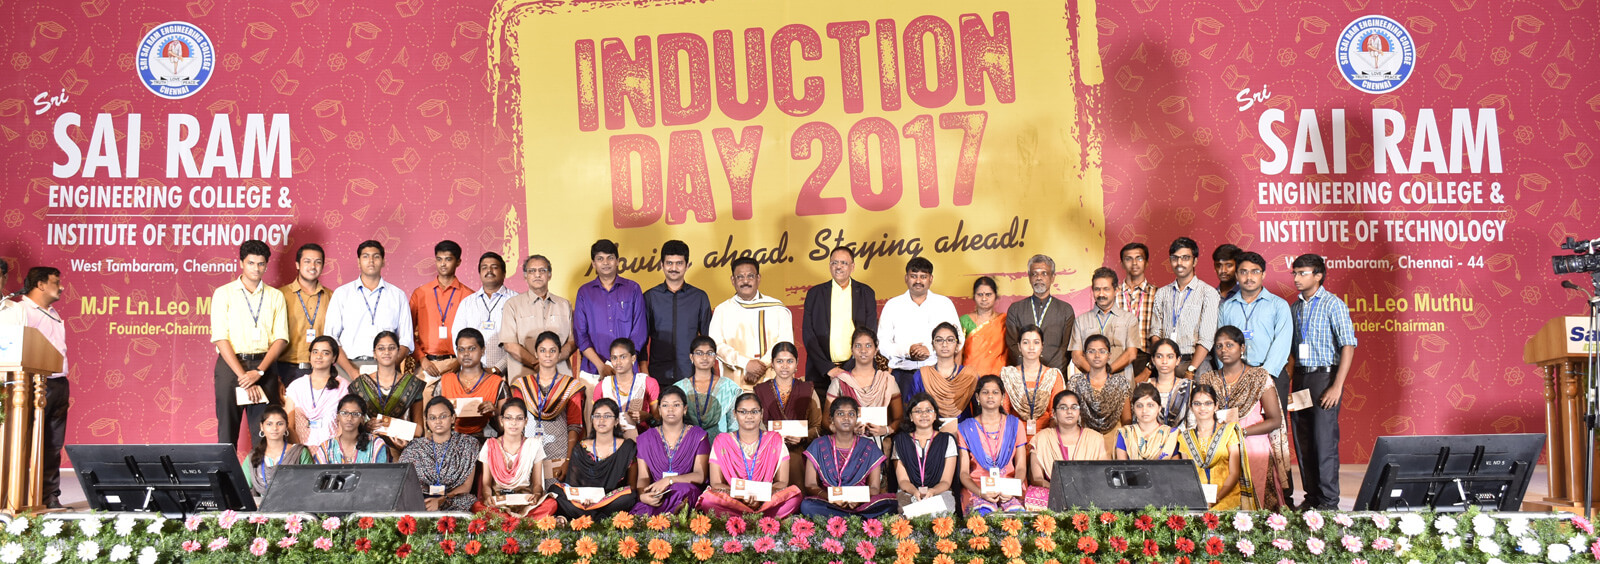 Sairam-Institution-Induction-Day-2017-1-1-1